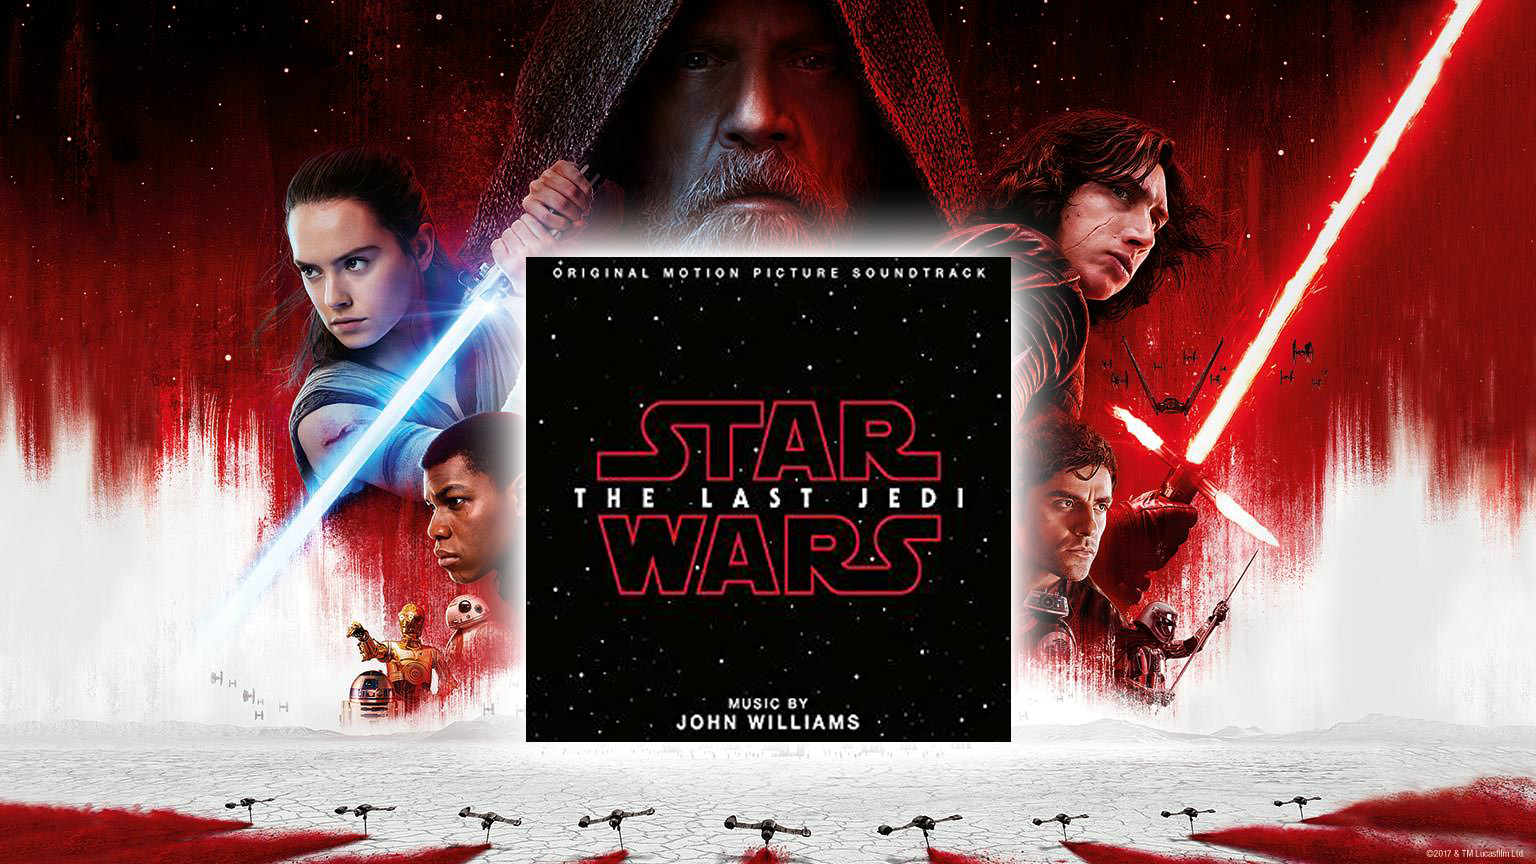 Star Wars: The Last Jedi Original Motion Picture Soundtrack Available Today!